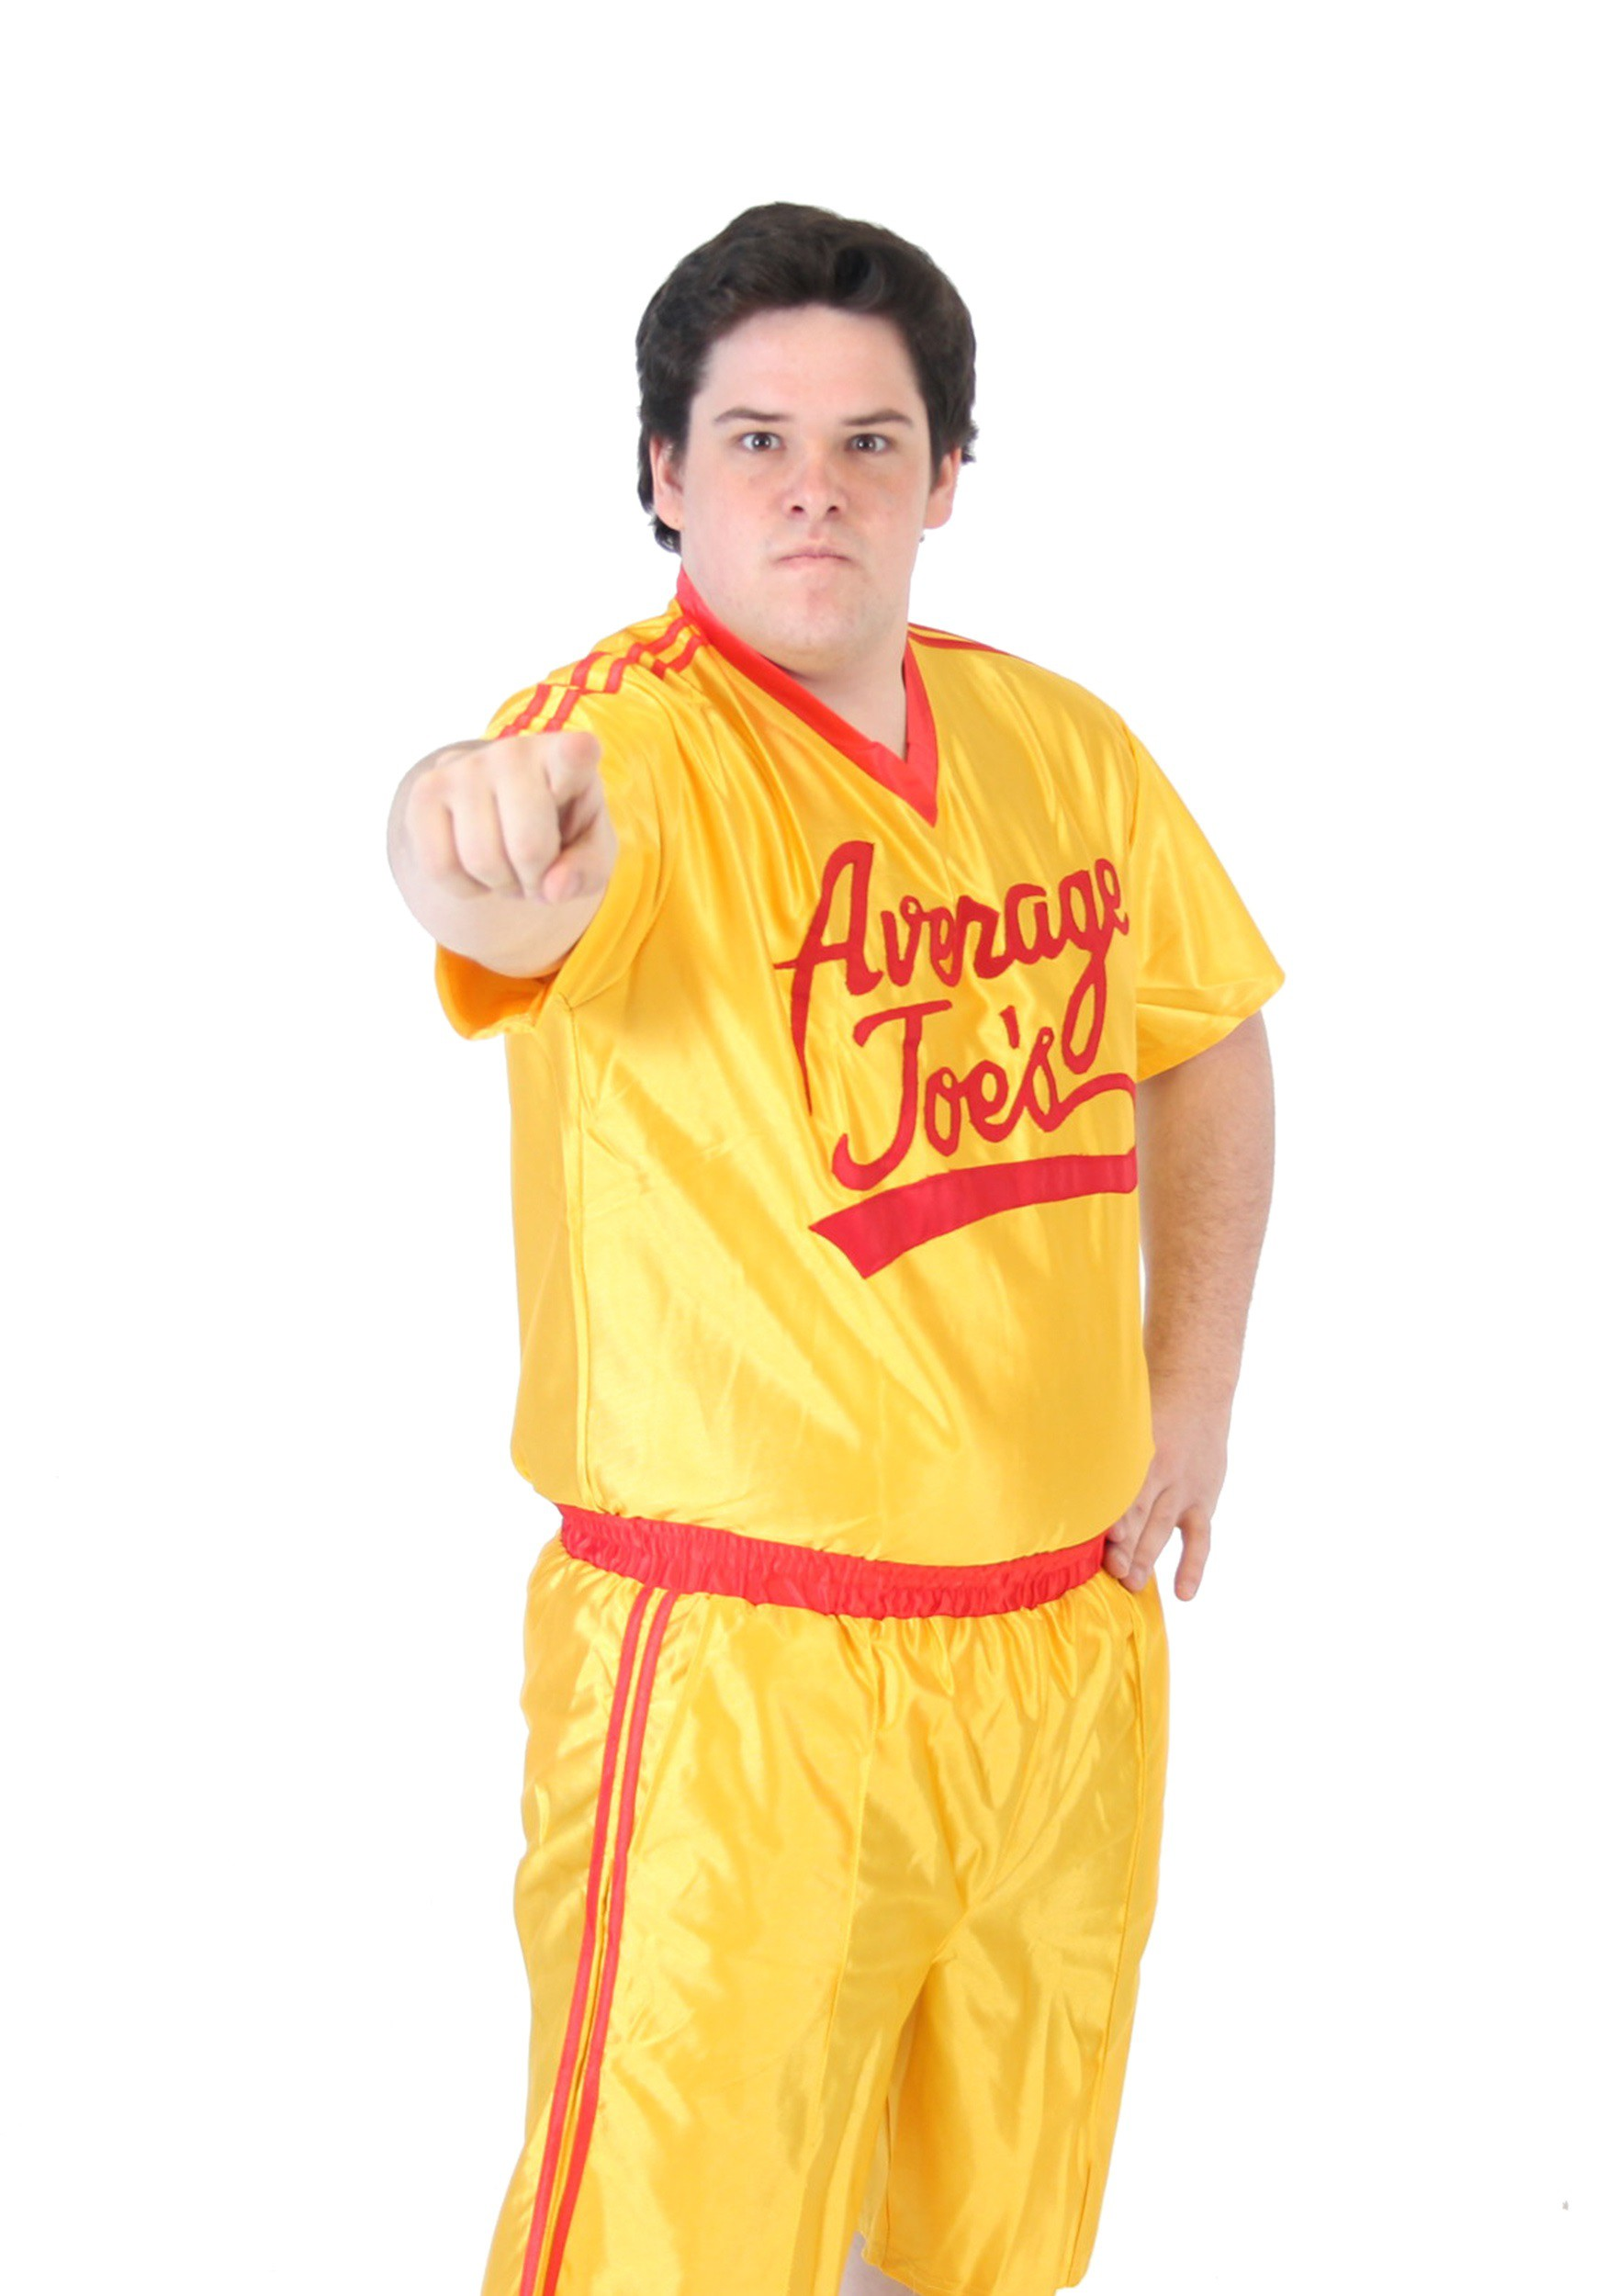 Plus Size Dodgeball Jersey Costume 2X 3X-1465